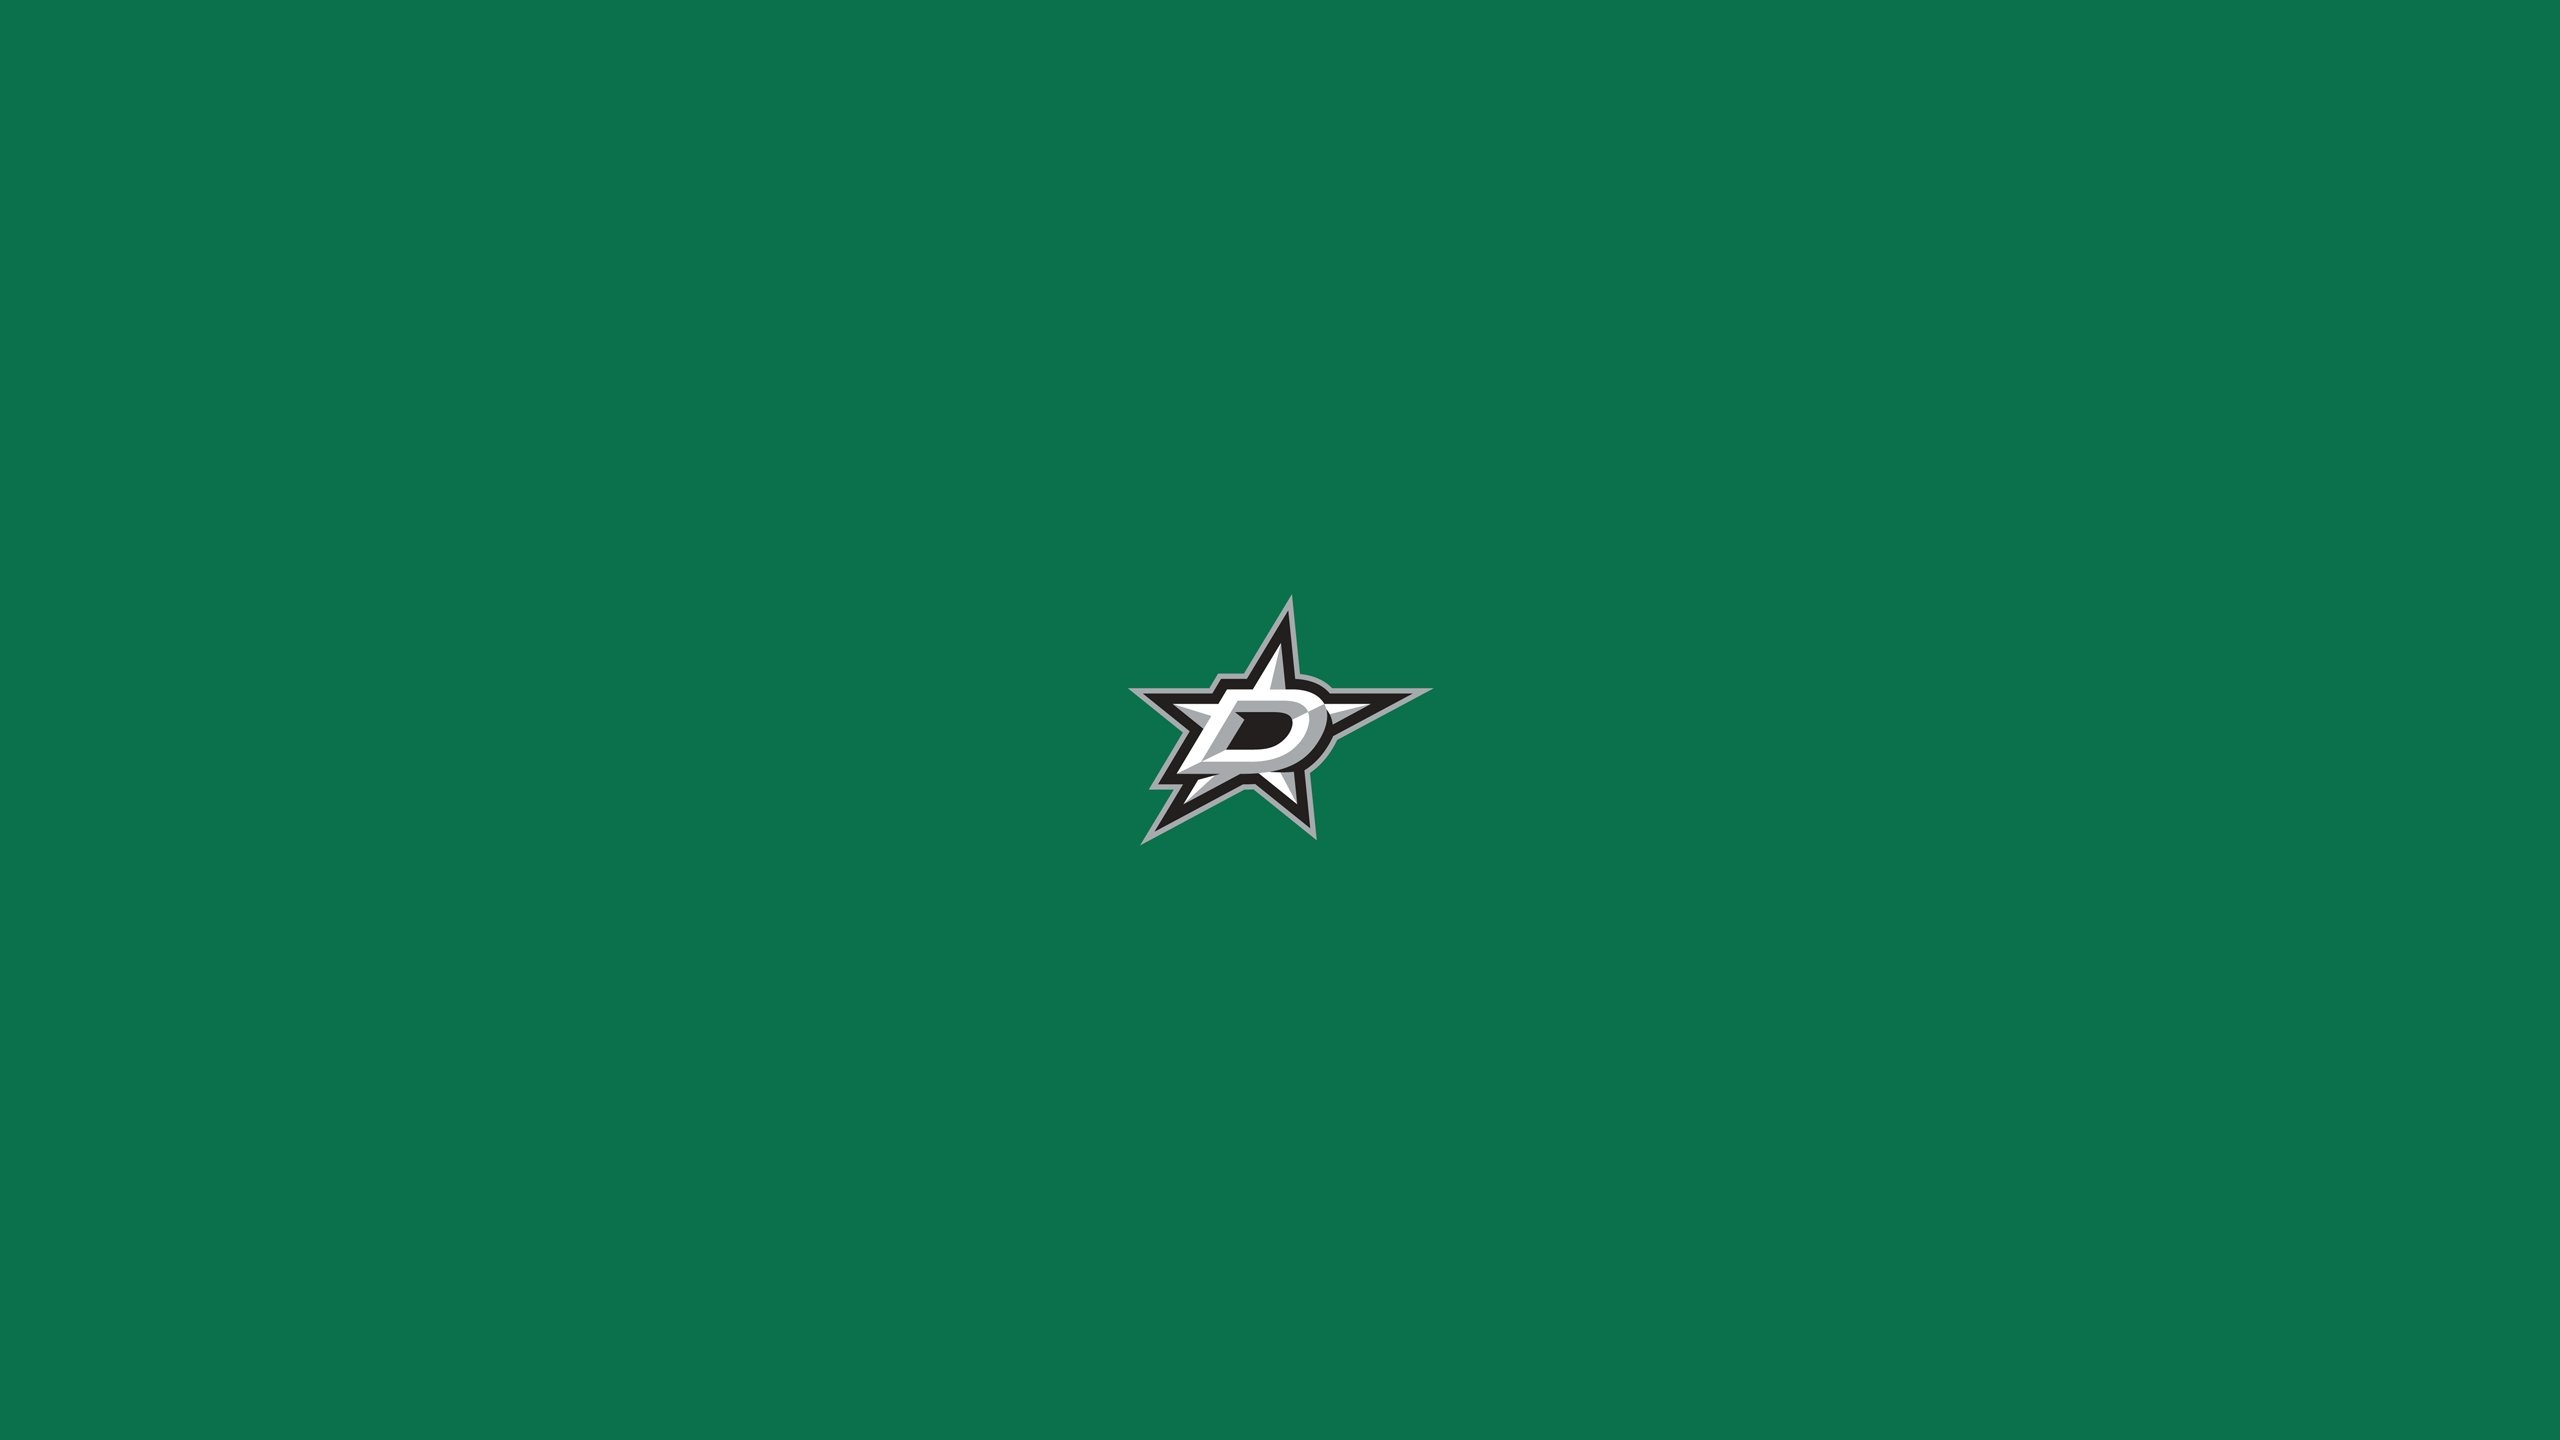 Dallas Stars HD Wallpapers Collection: Item 4224106